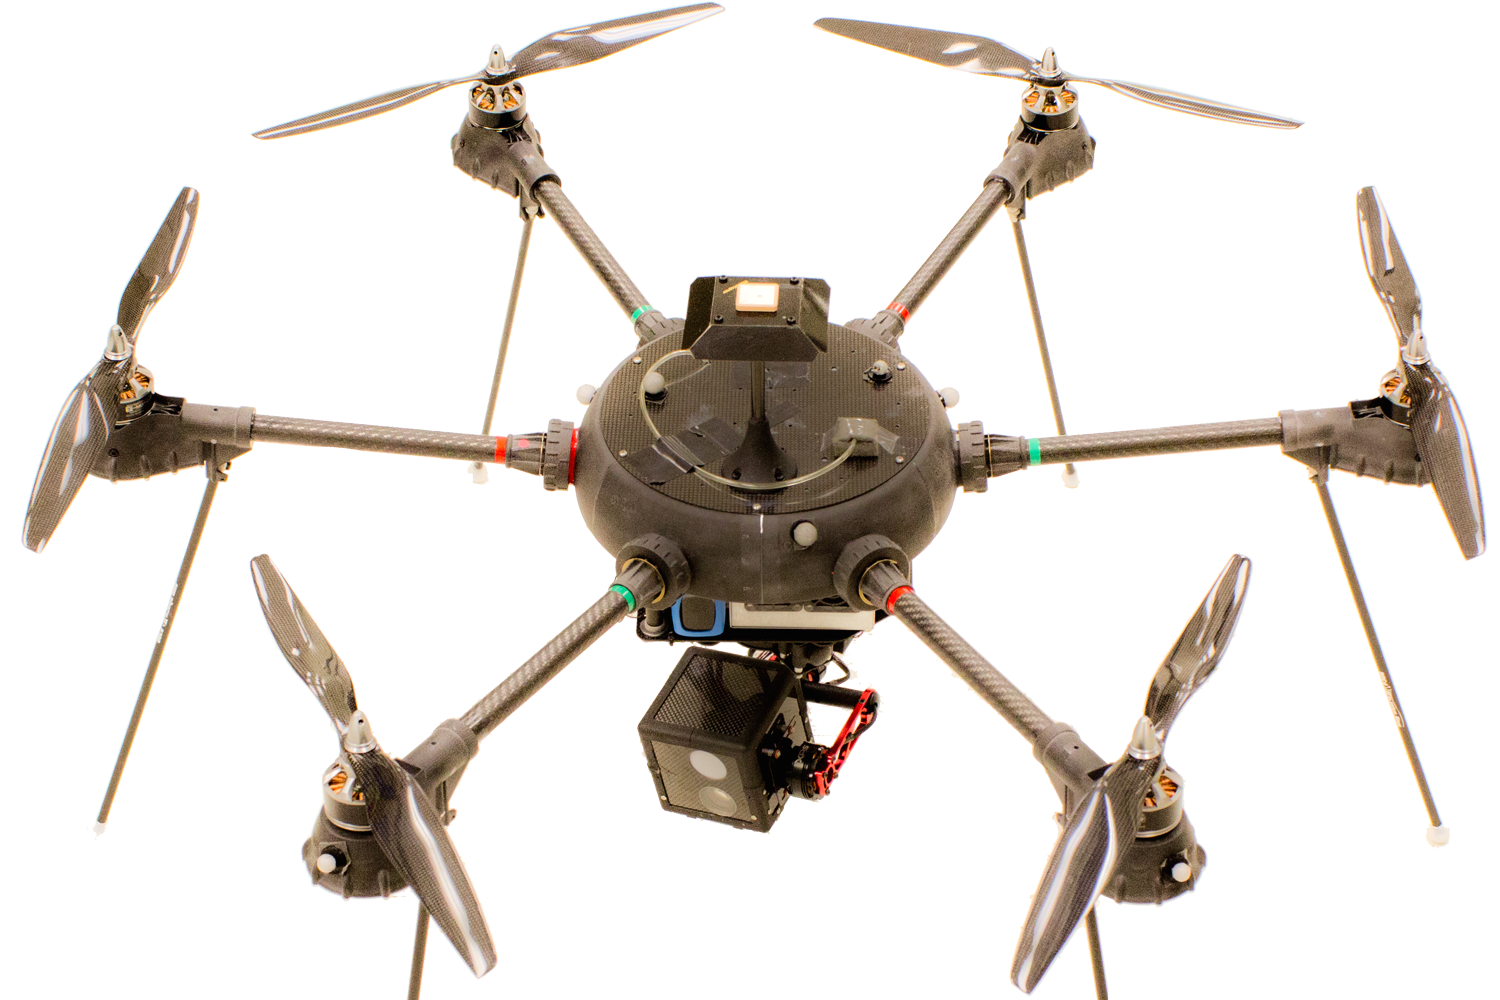 CyPhy Works Parc drone